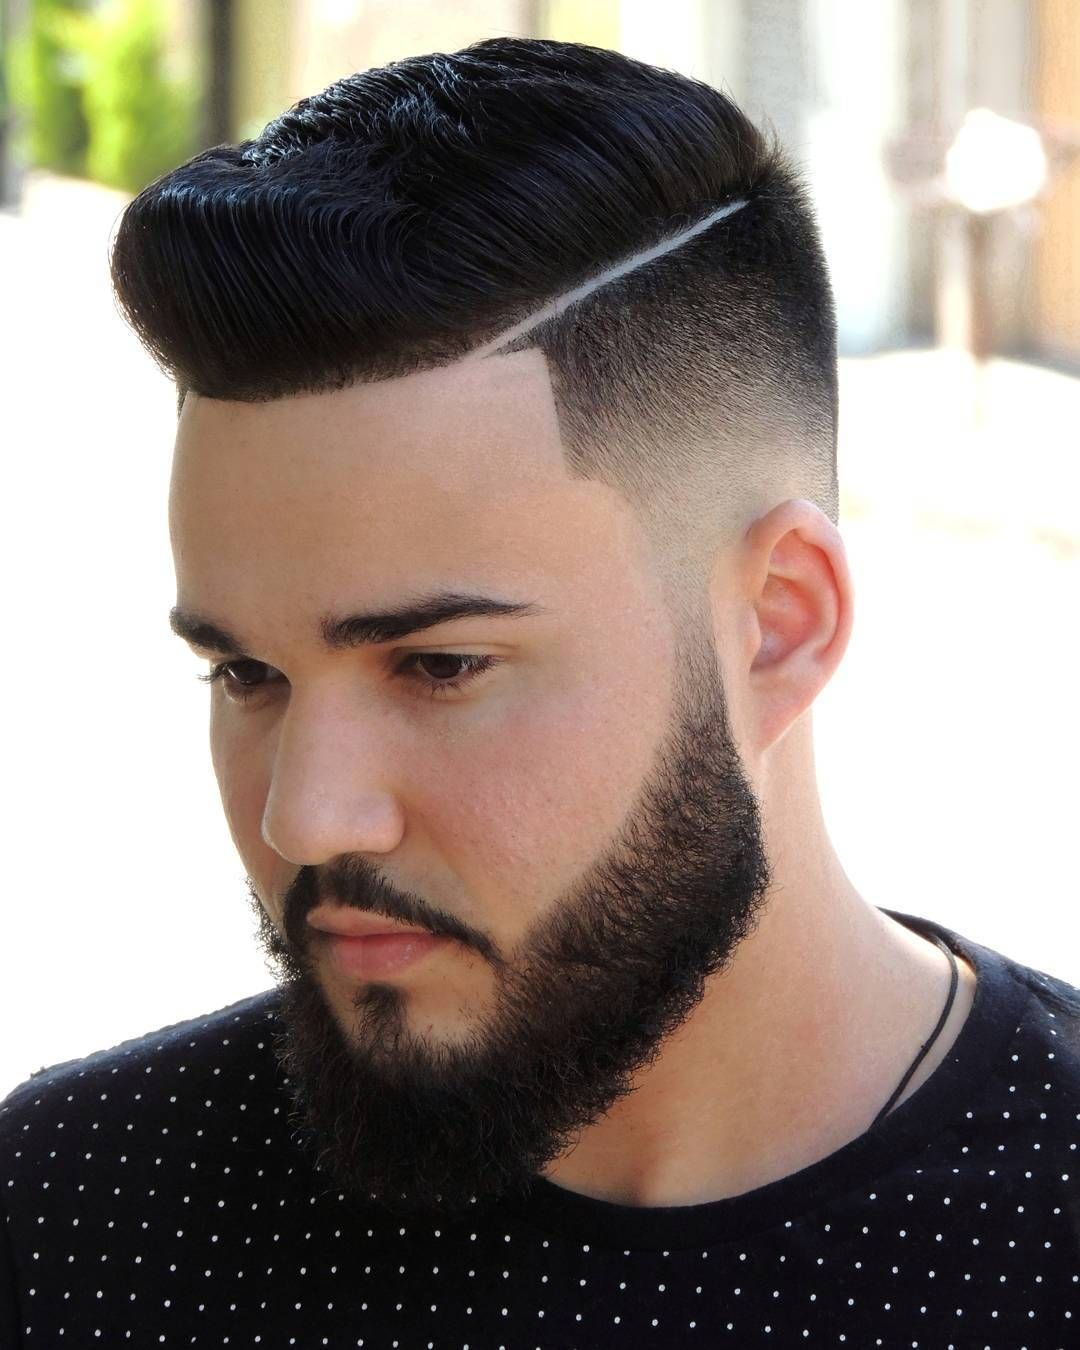 Best Men Hairstyle Haircut New 2018 Latest Men Hairstyles Haircuts For Men Latest Haircut For Men